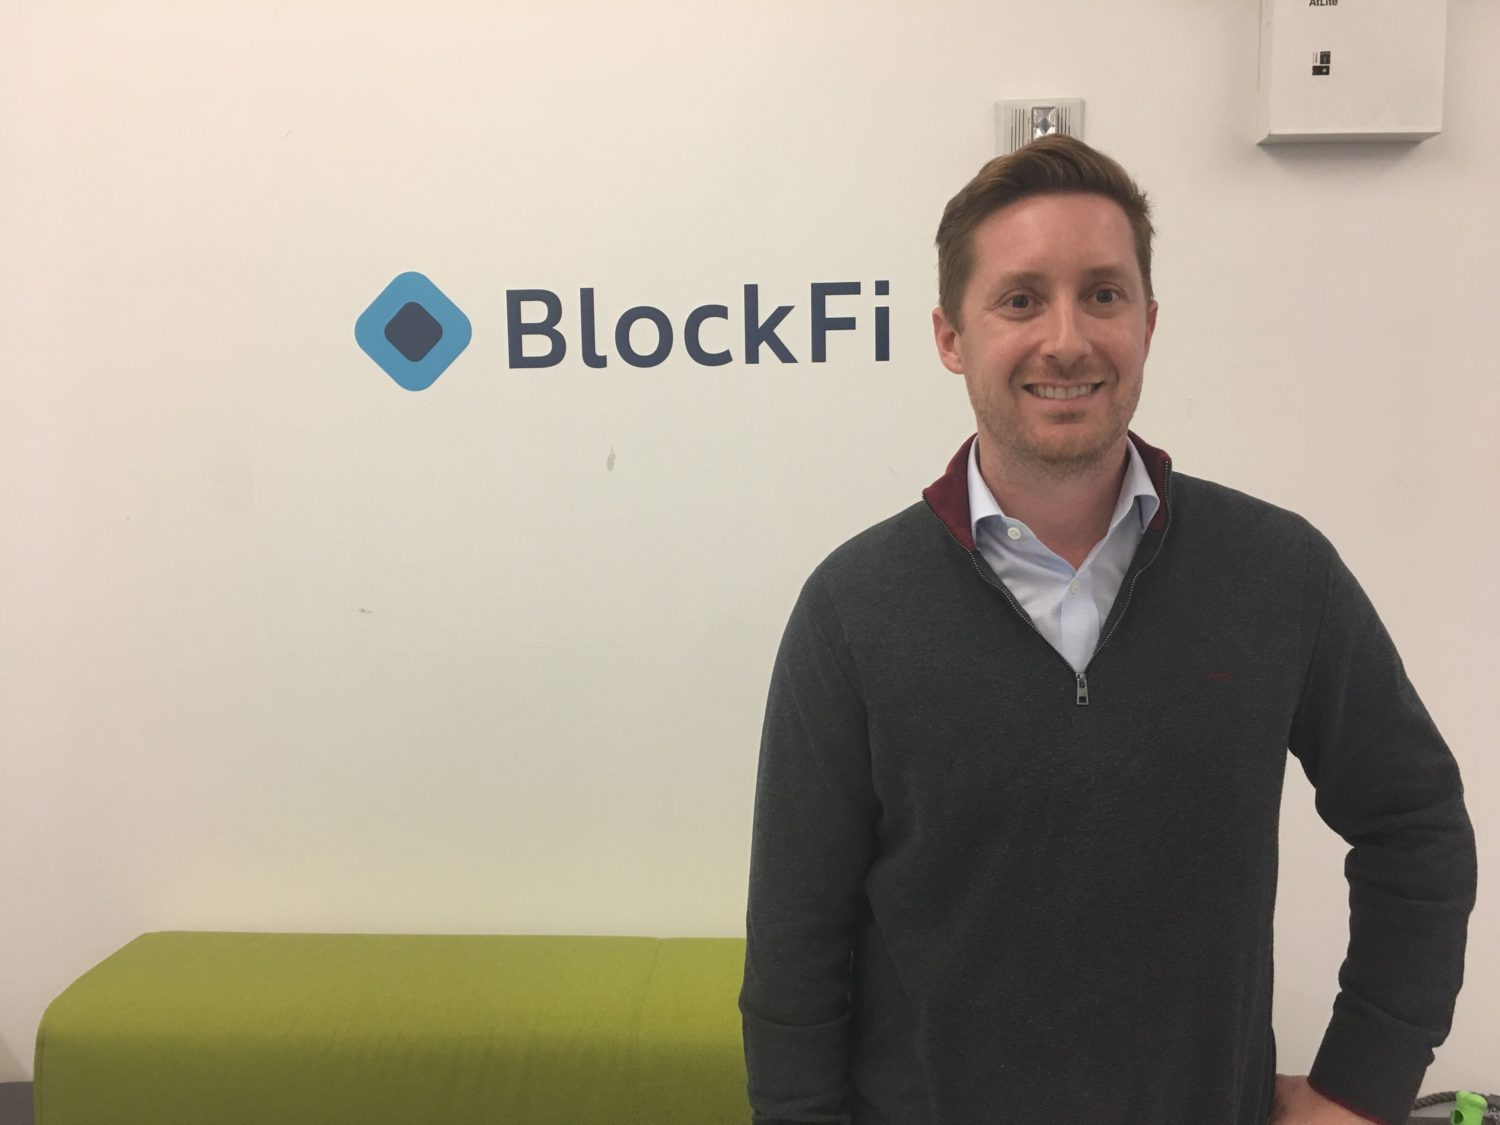 BlockFi Retail Account Balance Increased Five-Fold in Past Year, CEO Says